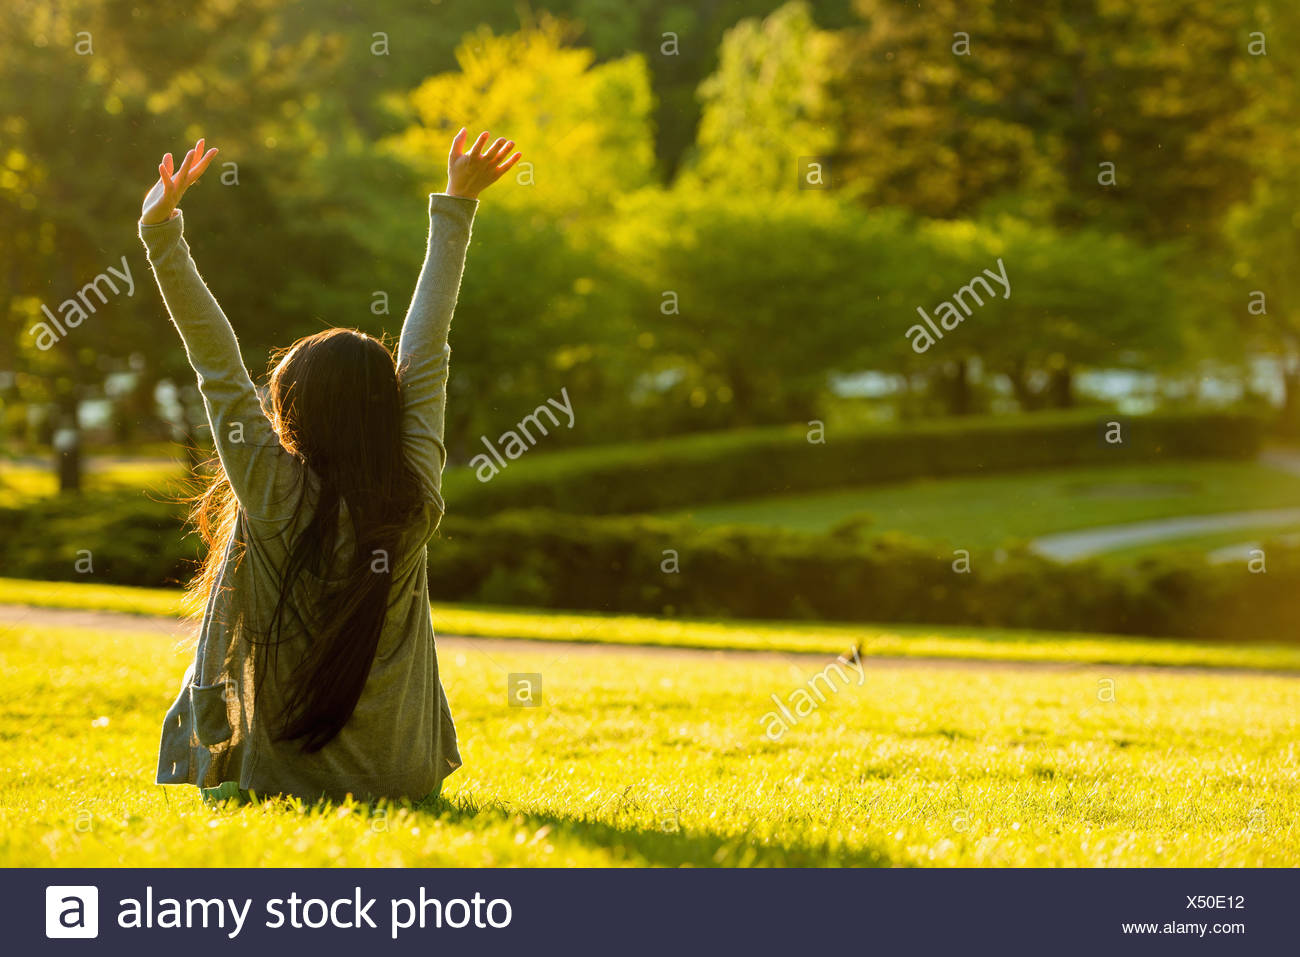 Young female sitting with arms raised in park - Stock Image